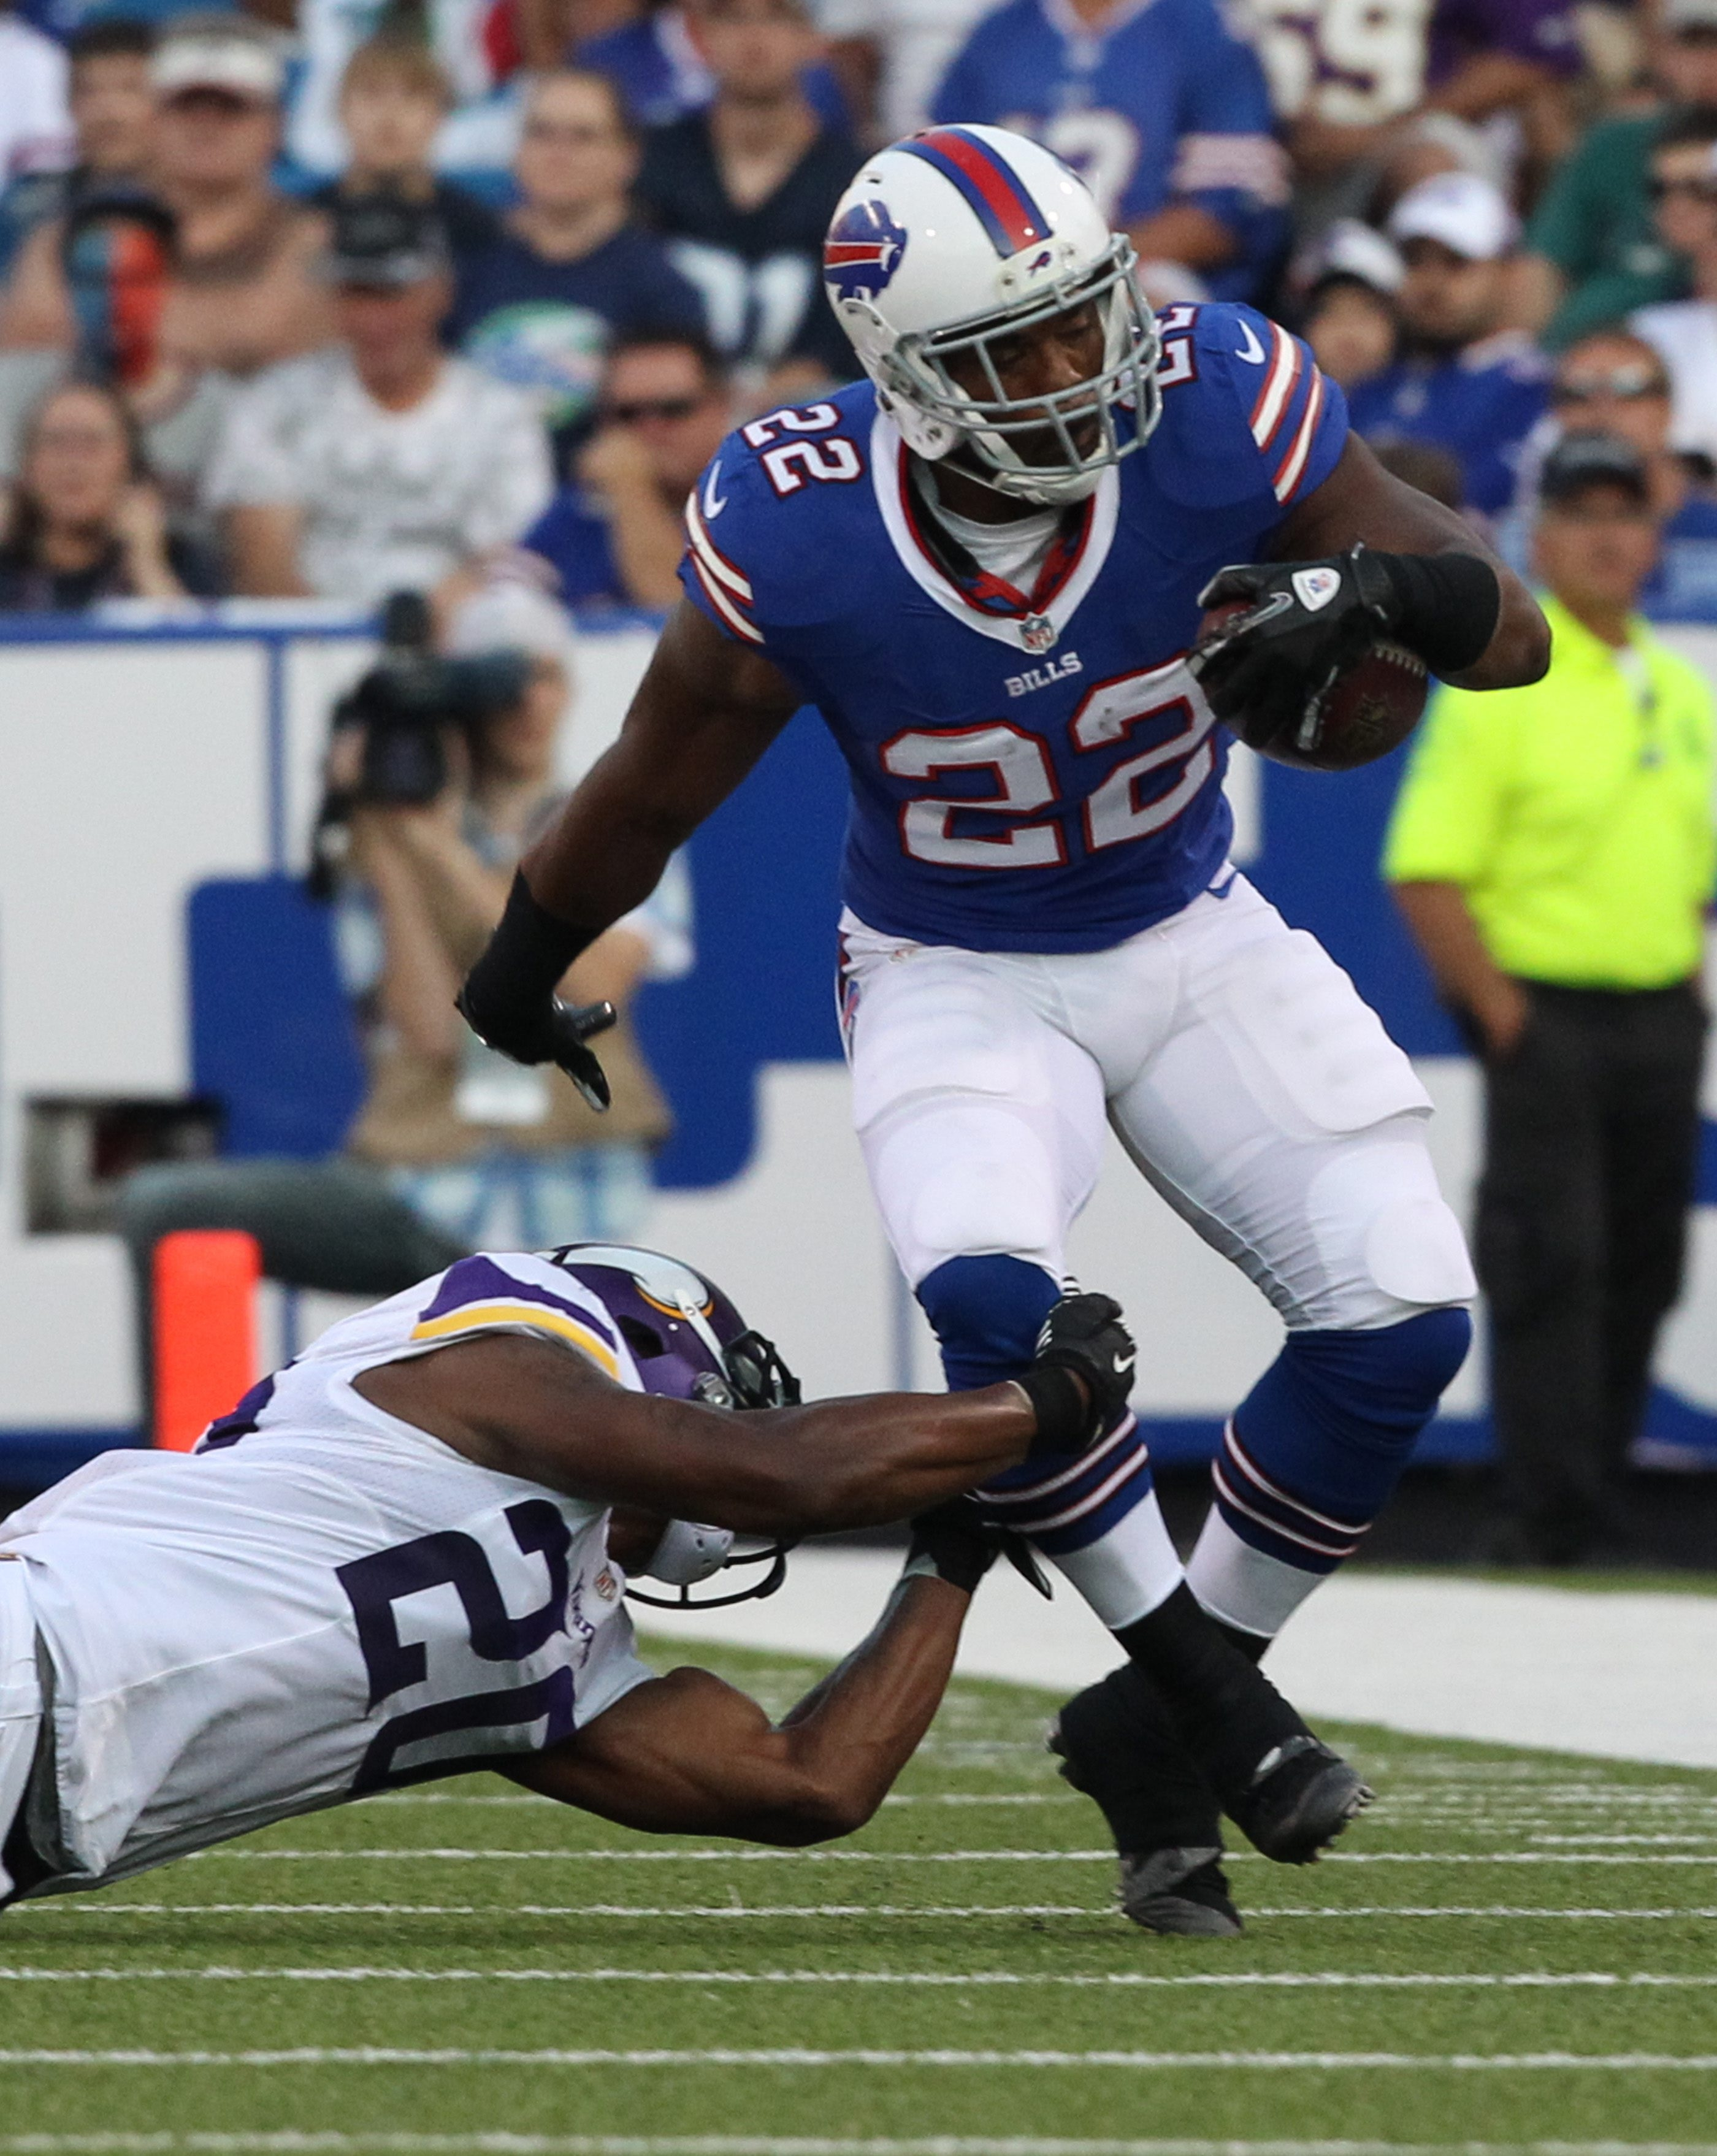 Fred Jackson (22) beats Minnesota cornerback Chris Cook (20) in the Bills' preseason win Friday. Jackson had 28 yards on seven carries.